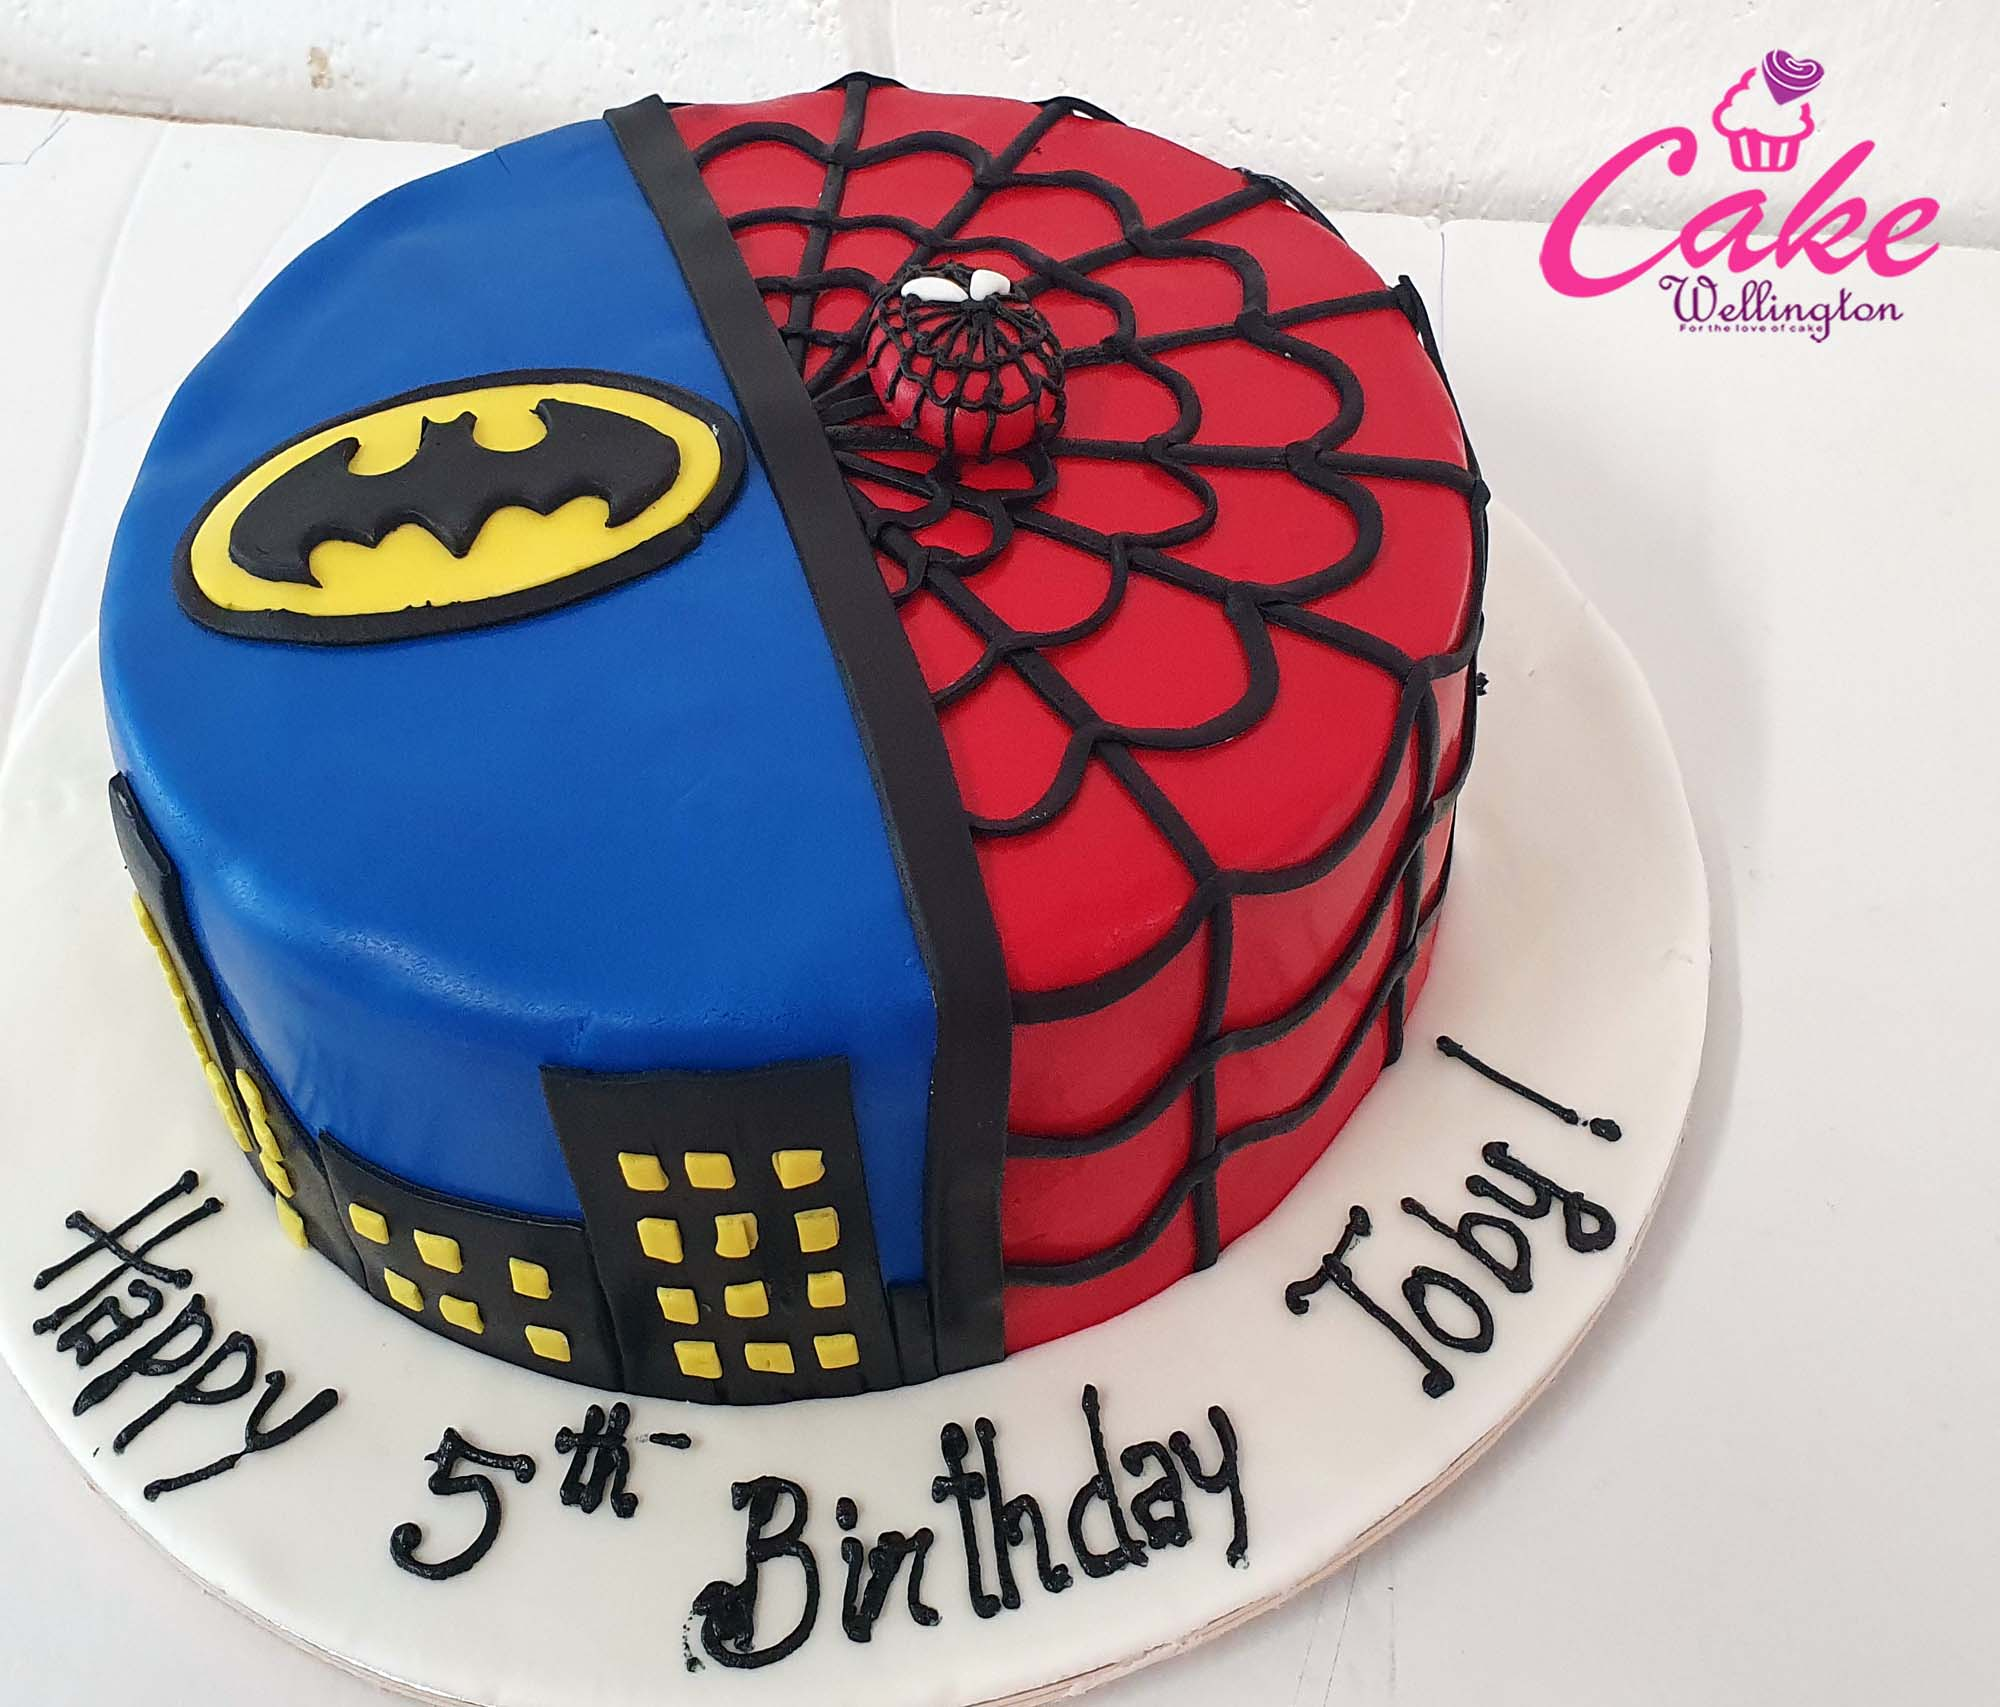 Fabulous Spiderman Birthday Cake From Cake Wellington The Best Cake Makers Personalised Birthday Cards Paralily Jamesorg